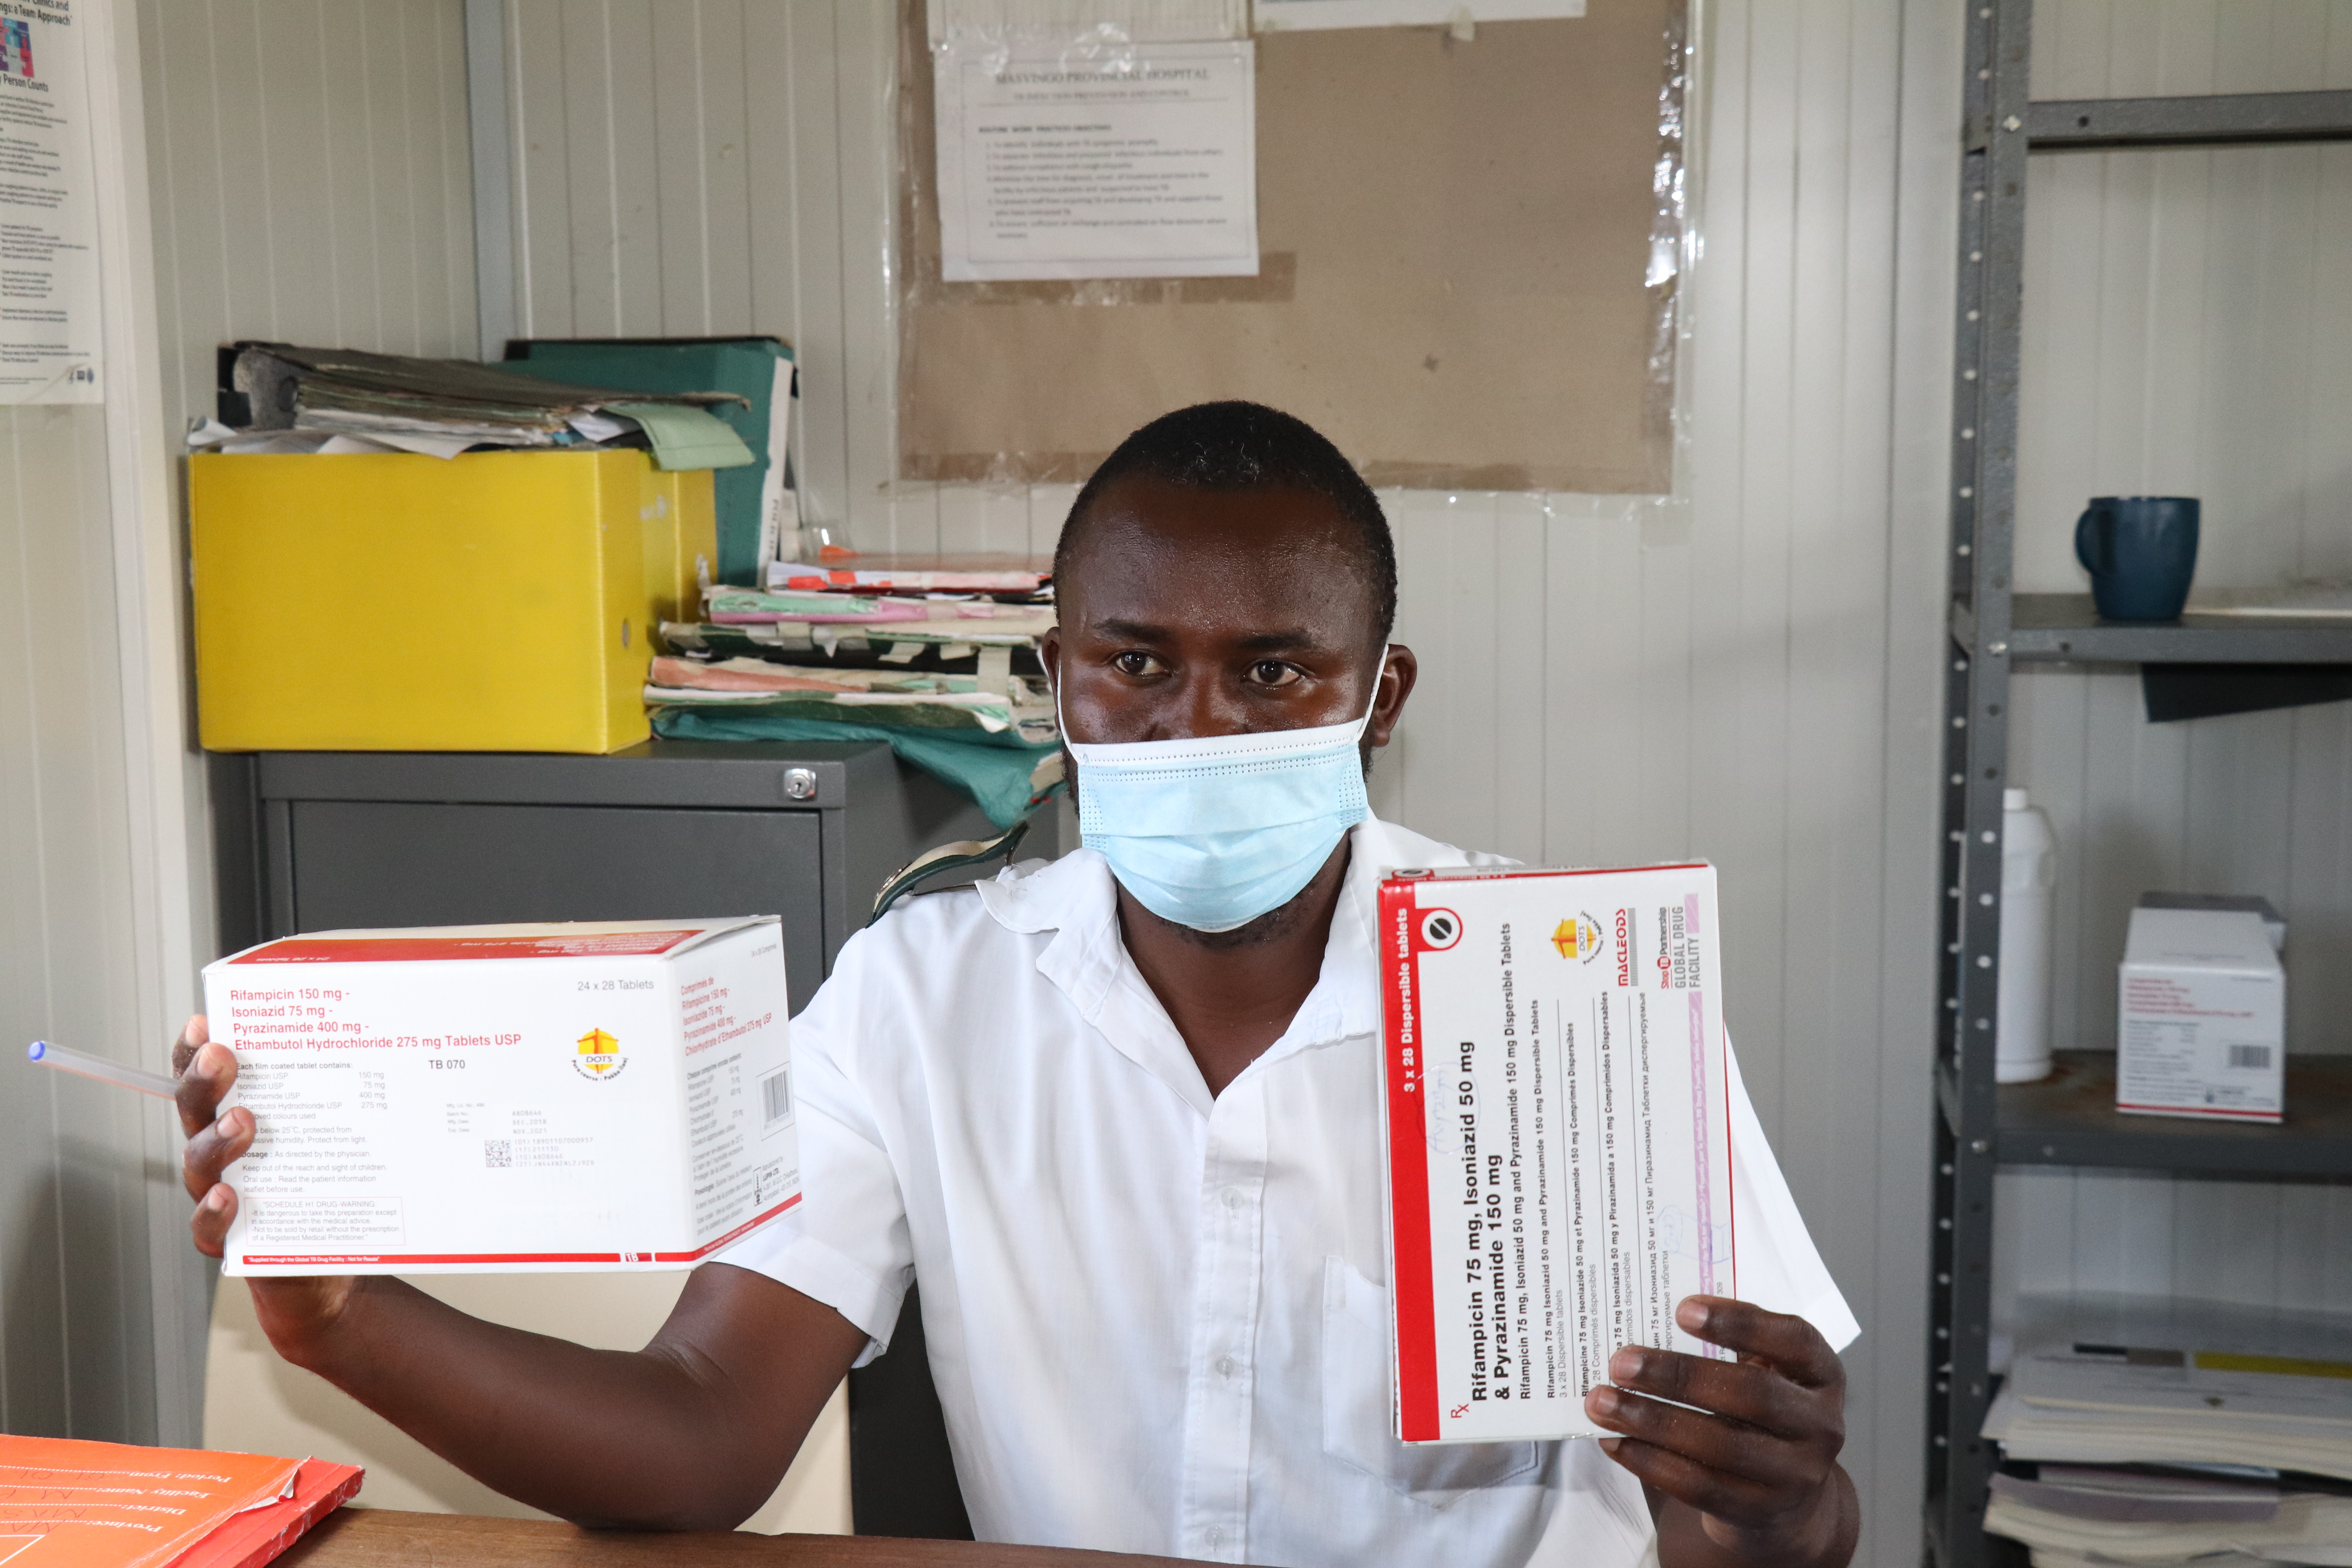 Health Care Worker Holding TB Drugs